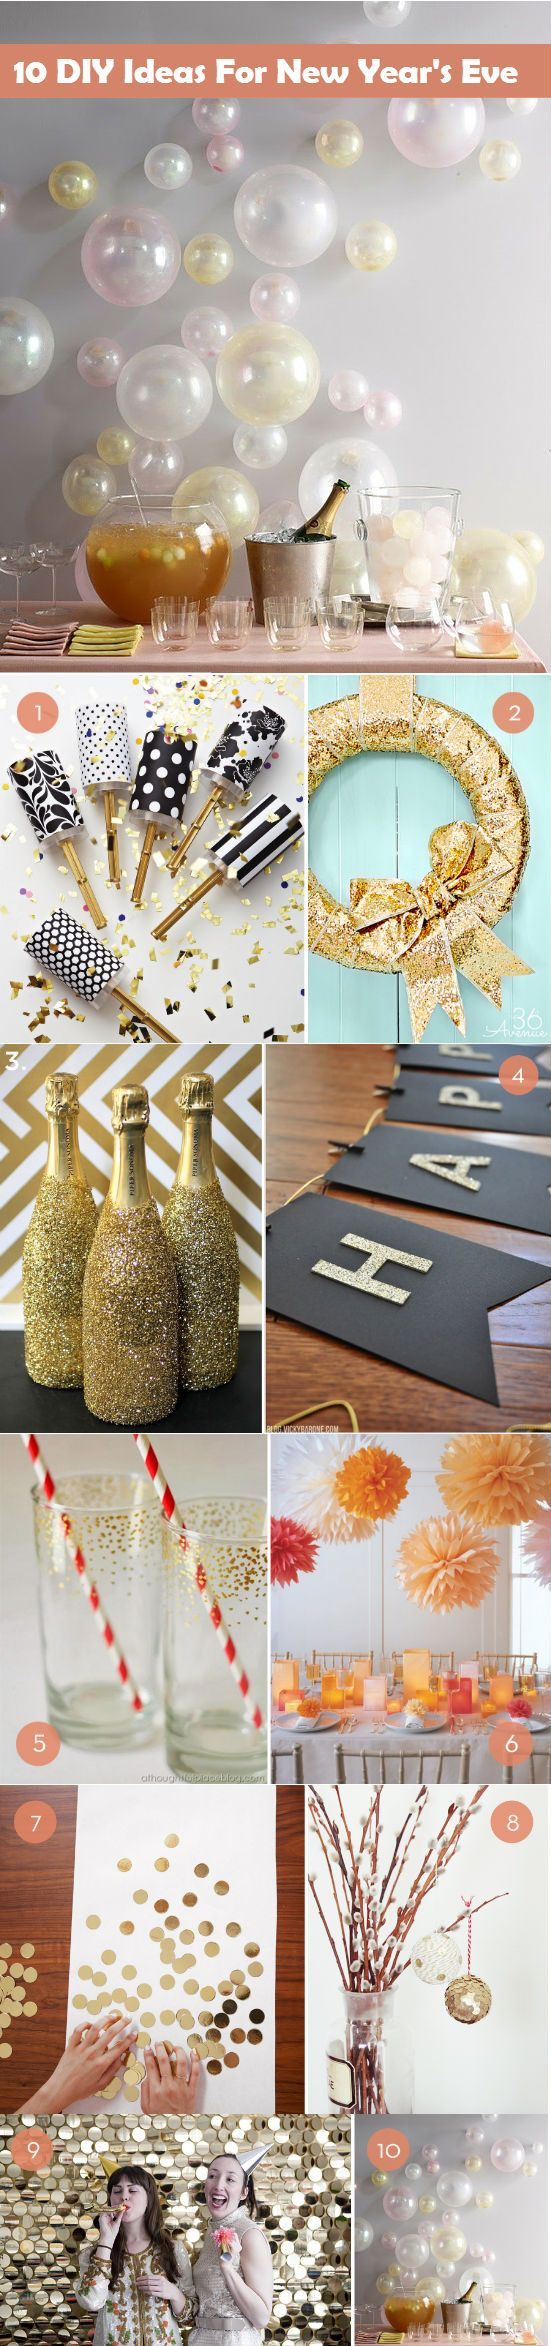 10 DIY Ideas For New Year's Eve